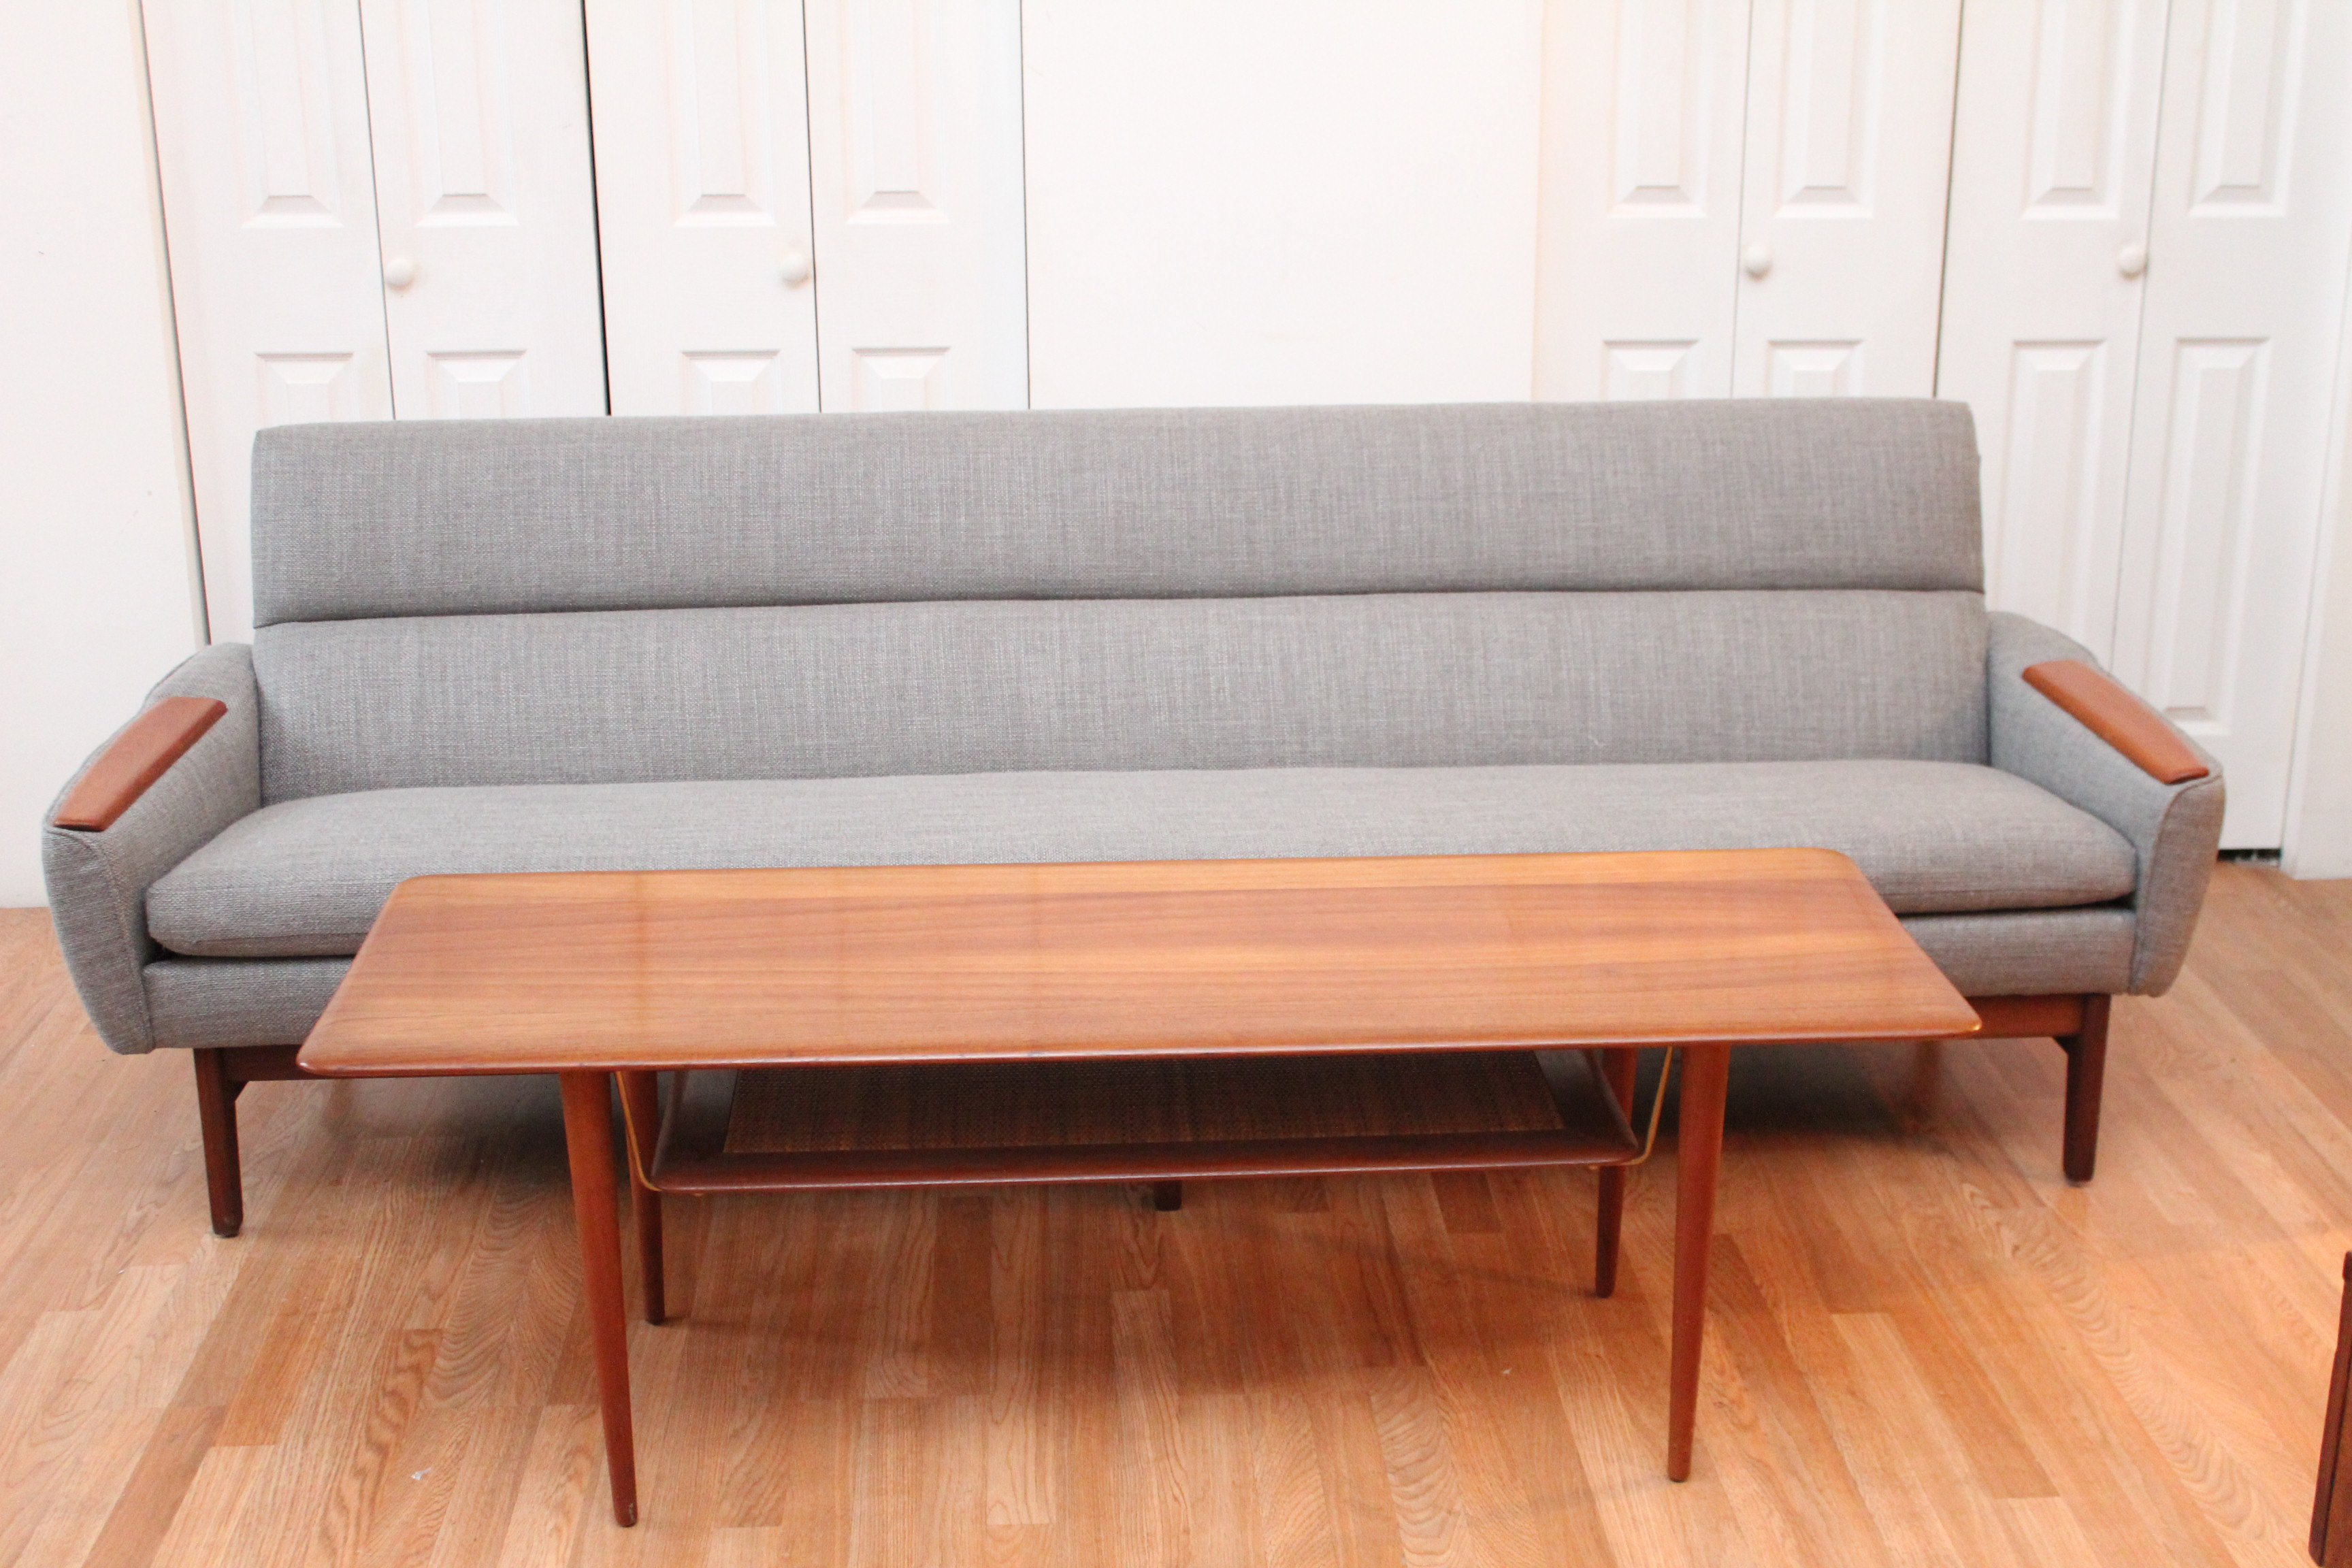 Danish mid century modern sofa affordable mid century for Mid century modern sofas